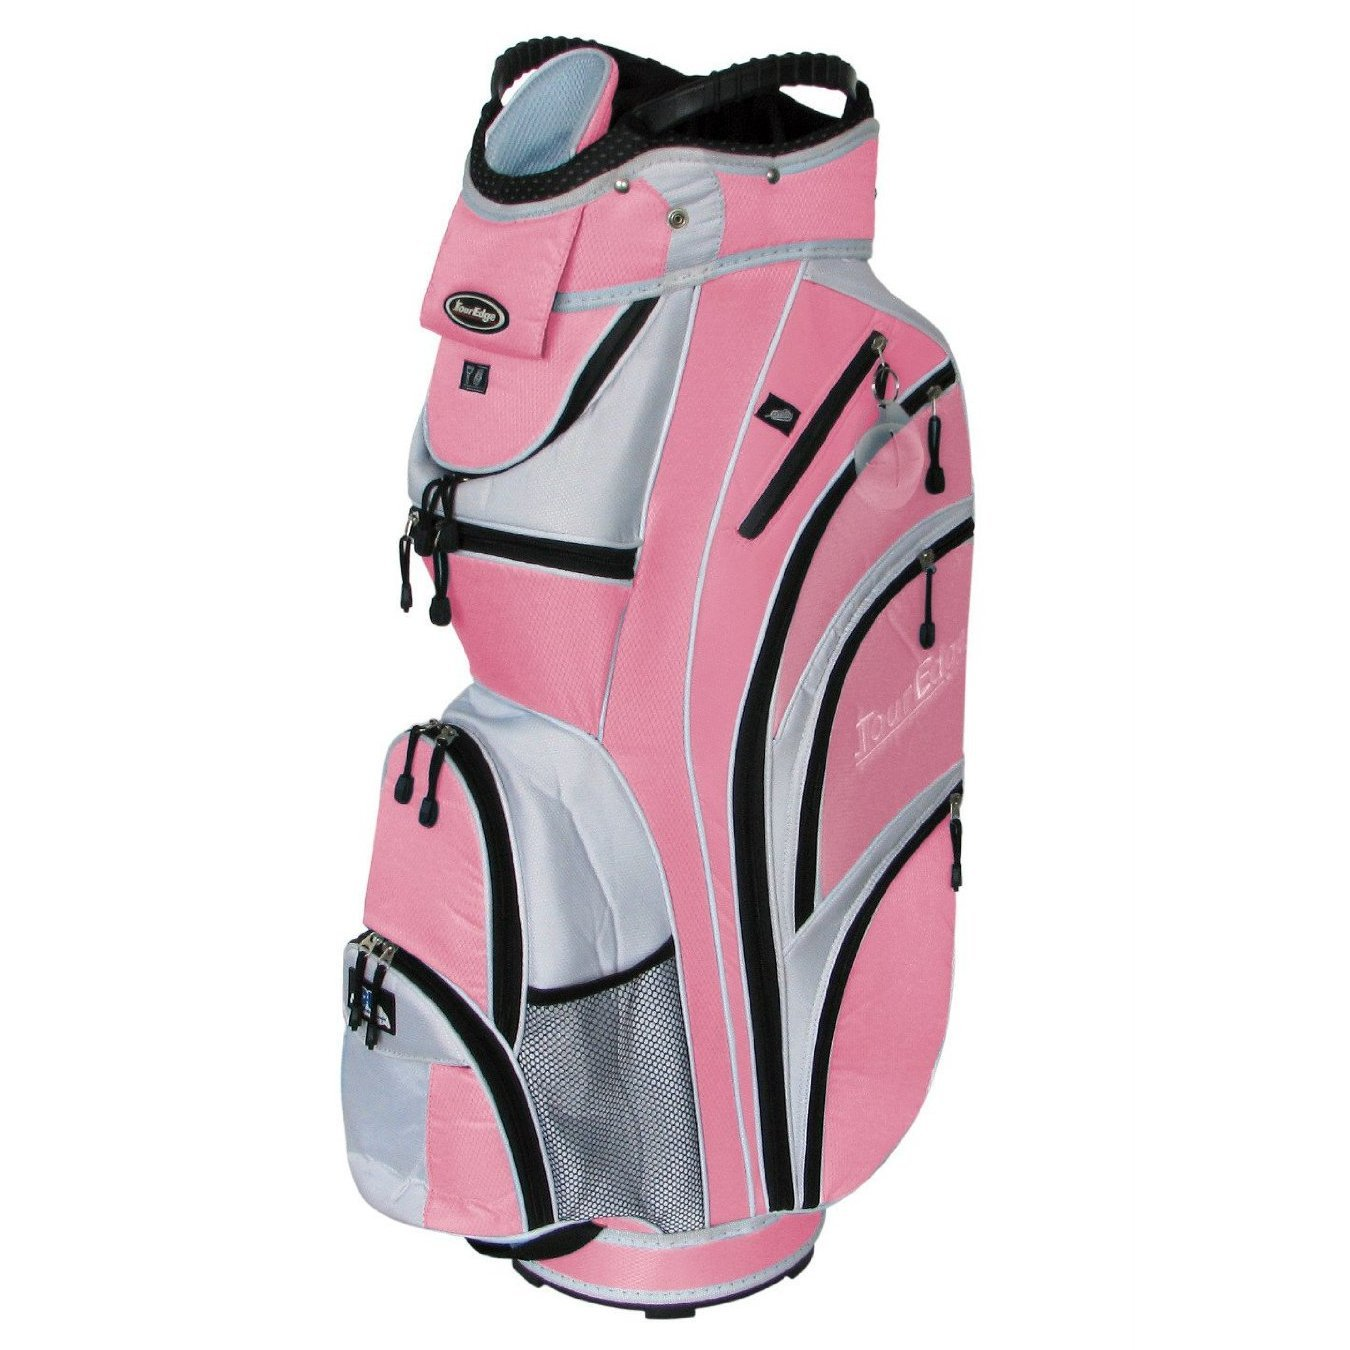 Tour Edge Womens Golf Bags